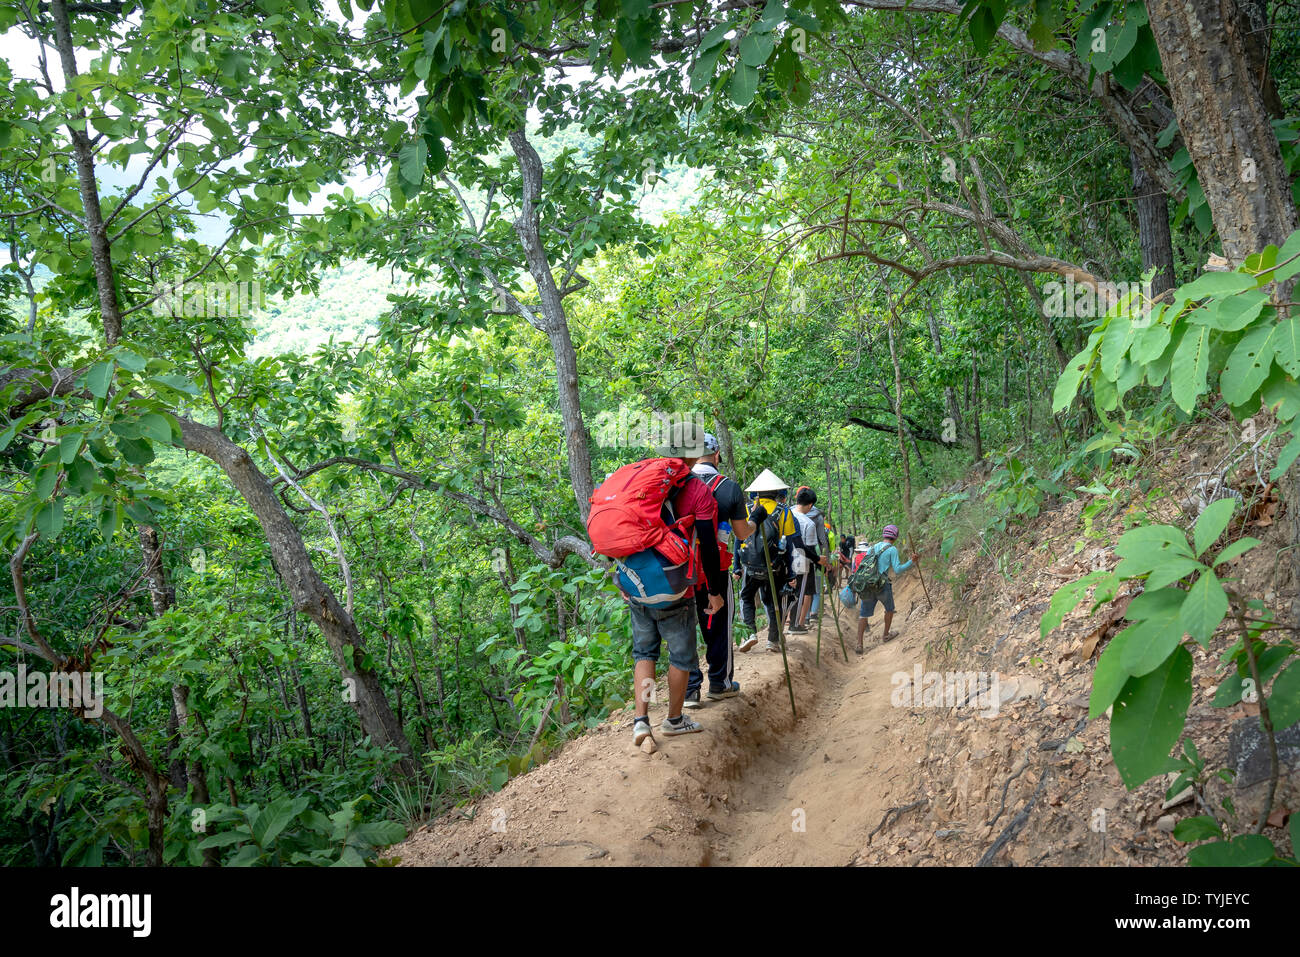 A group of travelers take the trekking trails along Ta Nang-Phan Dung route through grass hills and forests in Song Mao Nature Reserve - Stock Image